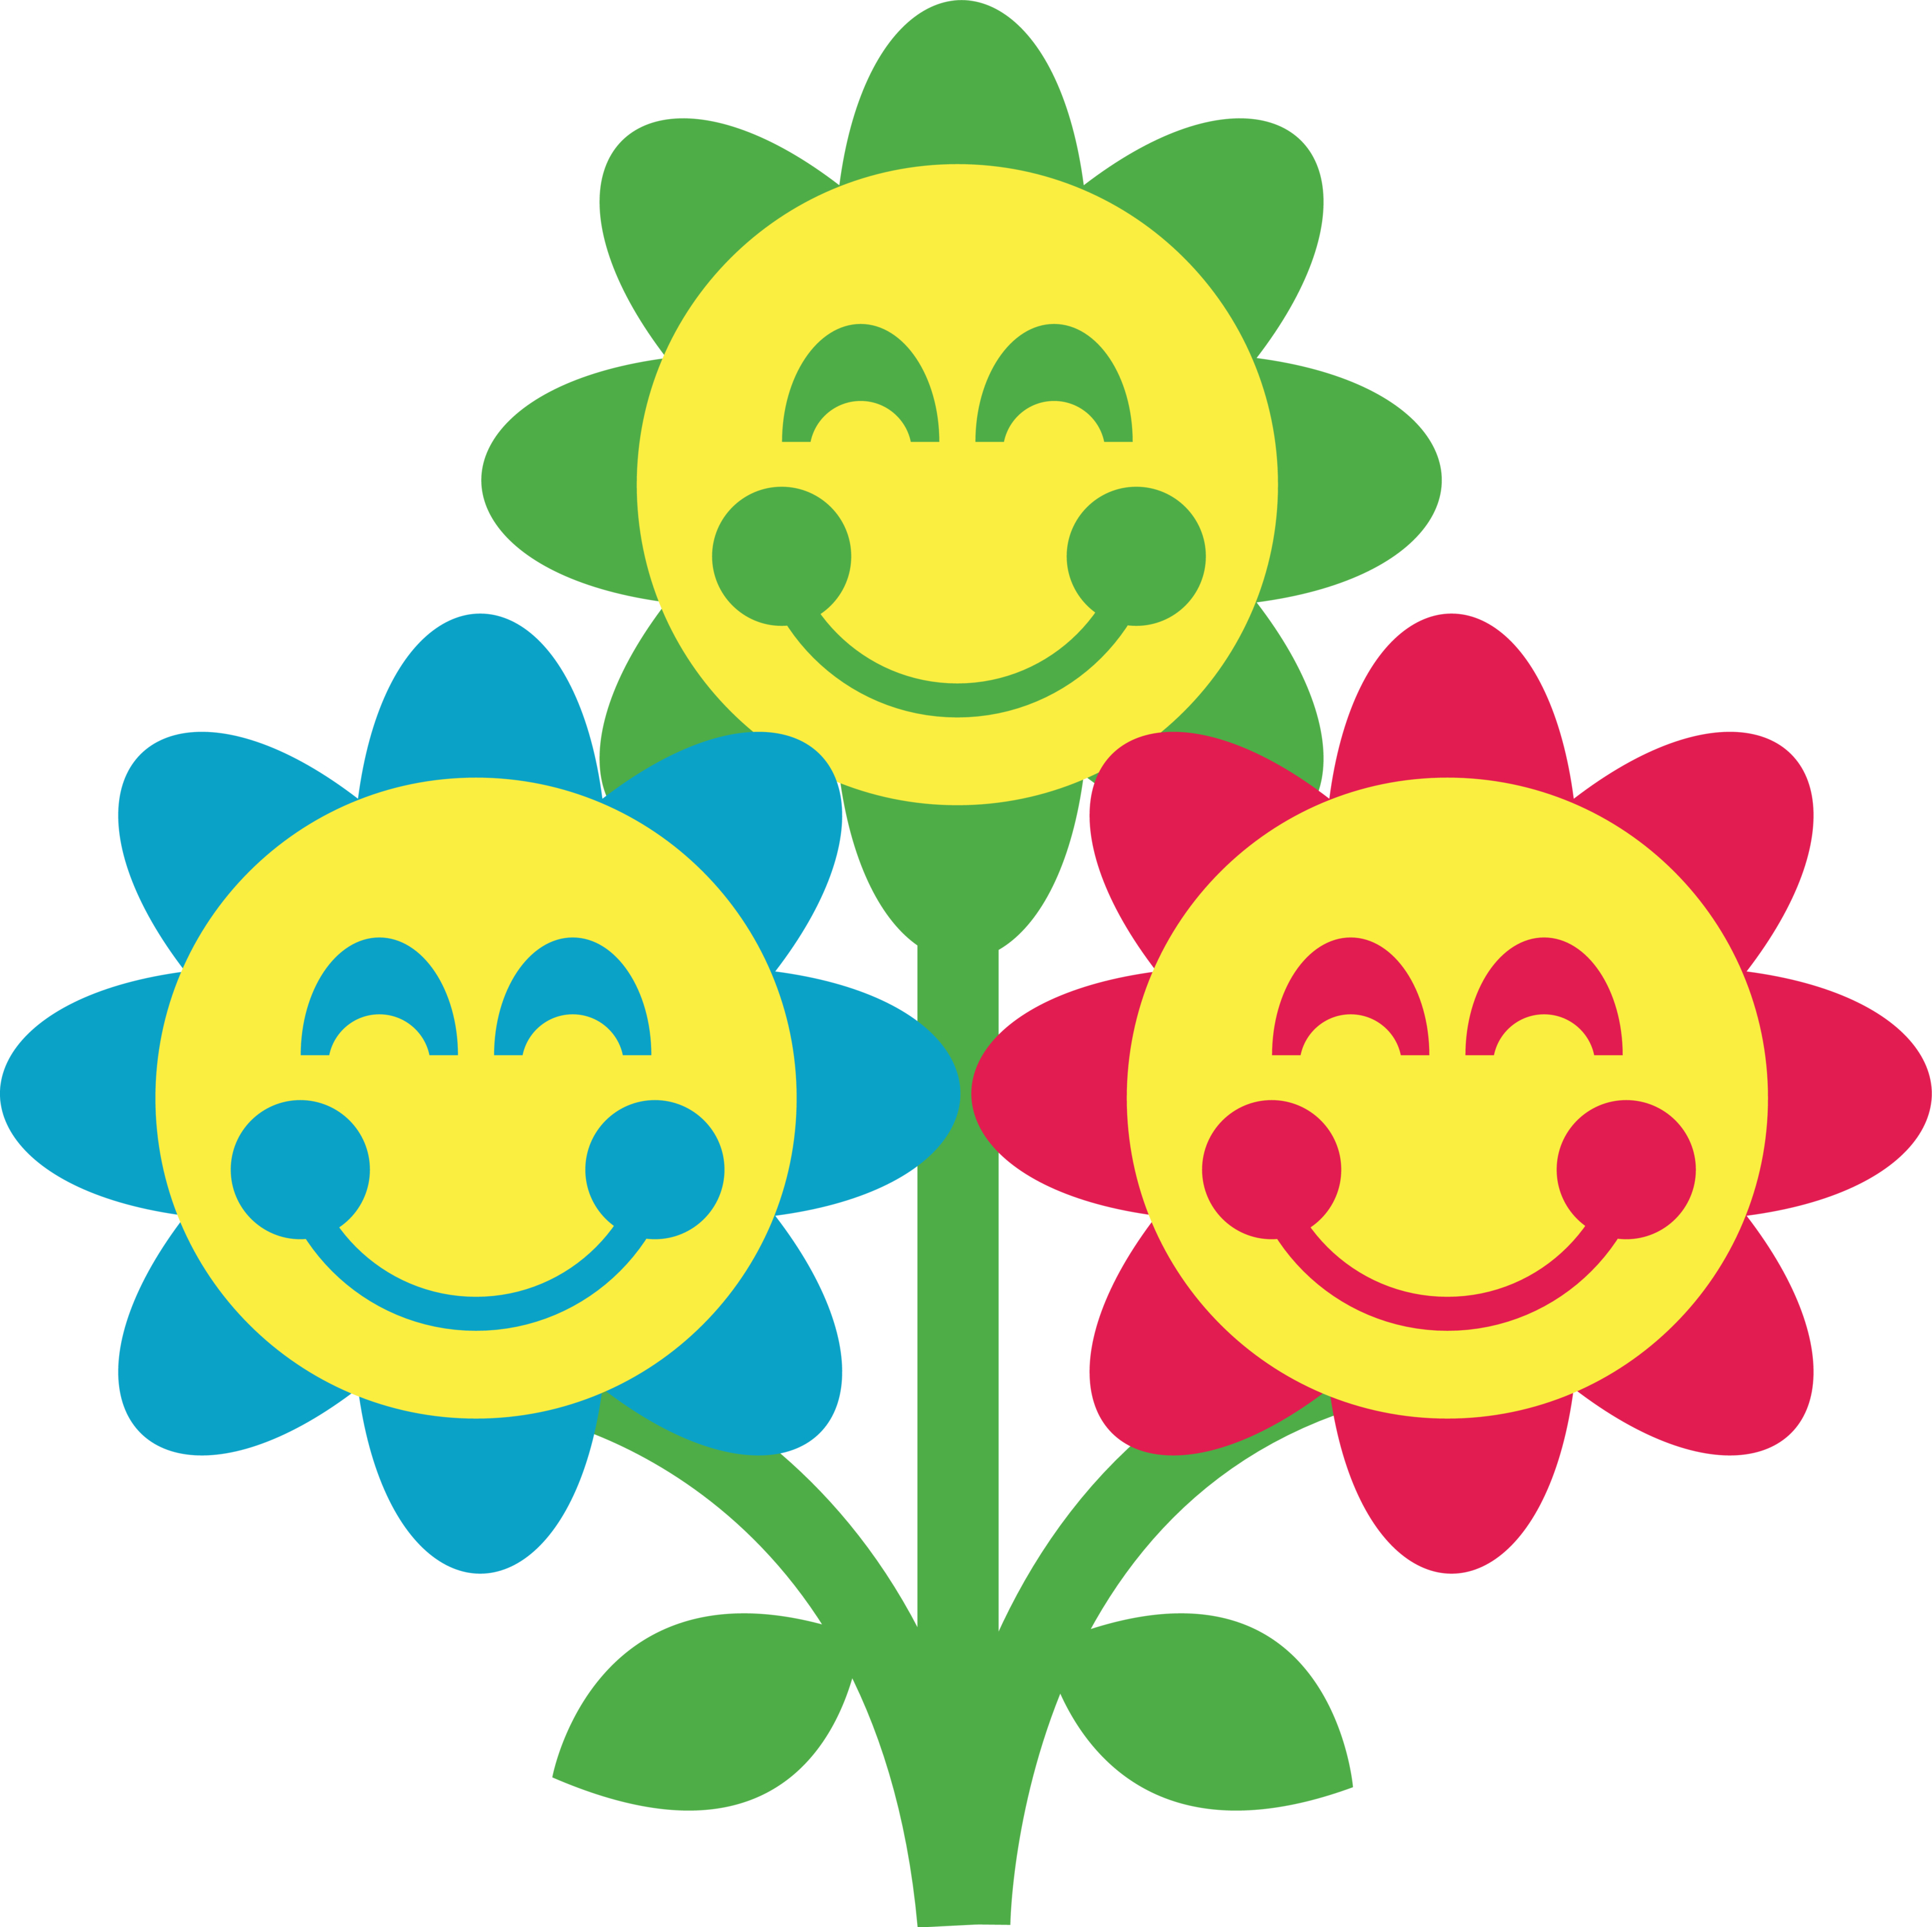 3000x2993 Free Smiley Face Flower Clipart Image